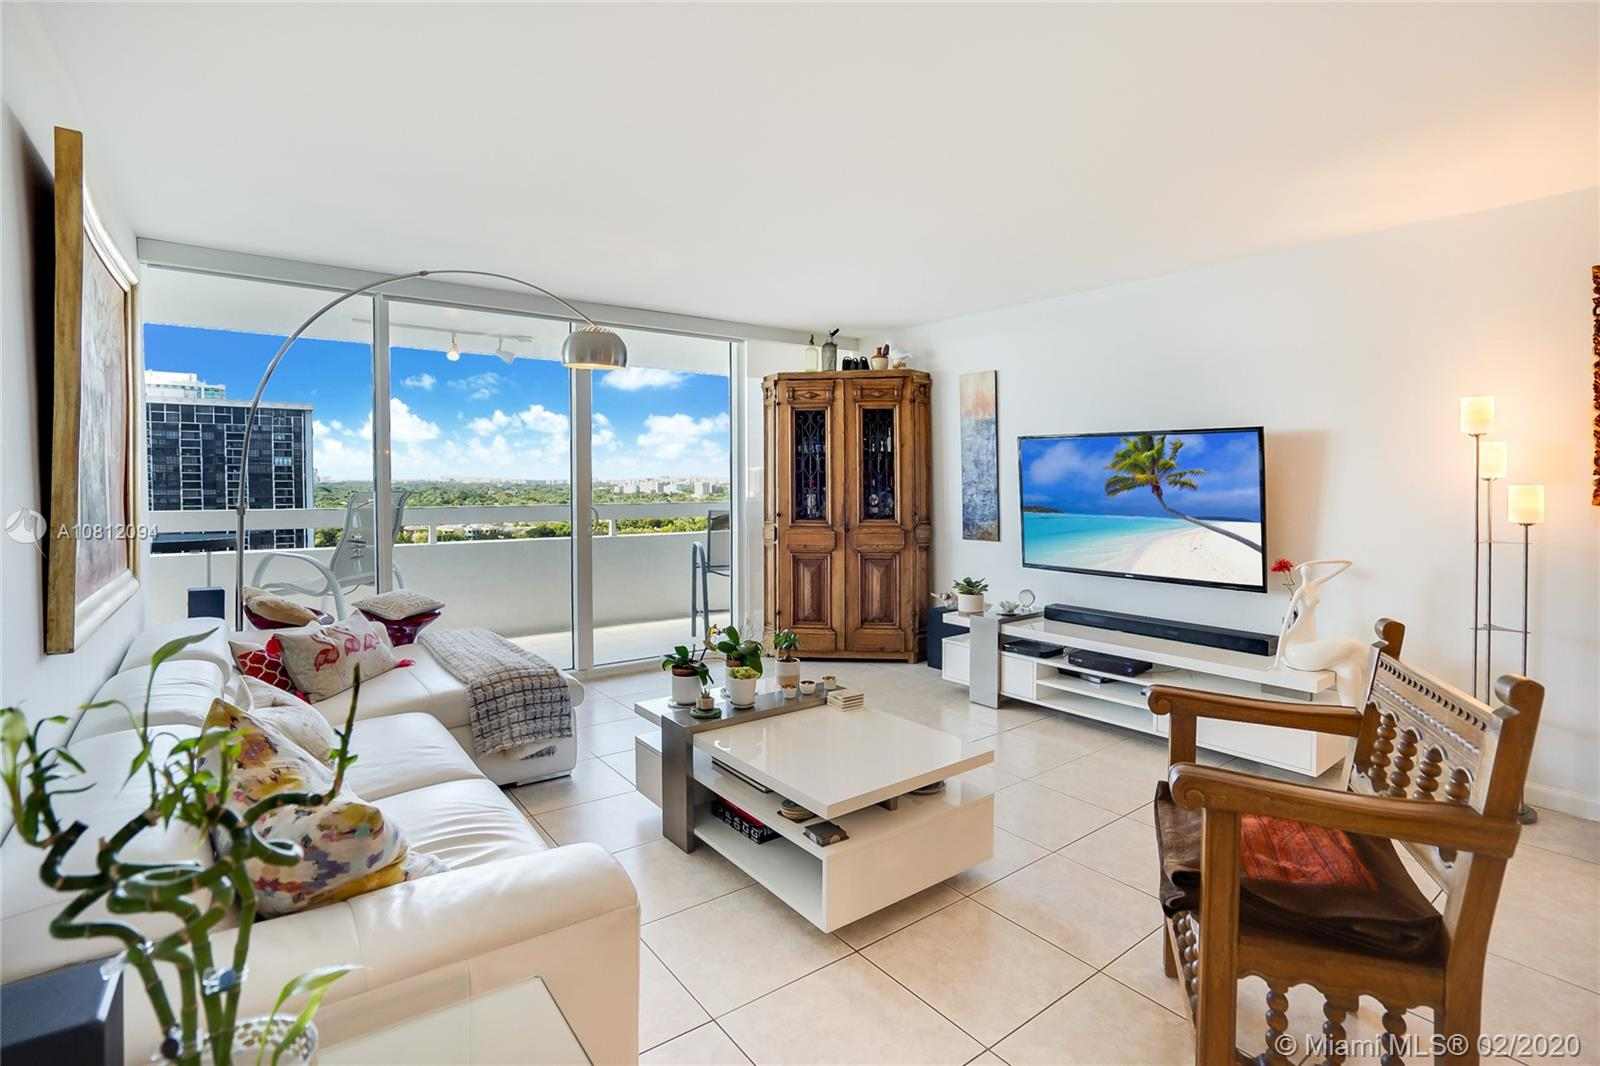 1627 Brickell Ave # 2002, Miami, Florida 33129, 2 Bedrooms Bedrooms, ,3 BathroomsBathrooms,Residential,For Sale,1627 Brickell Ave # 2002,A10812094